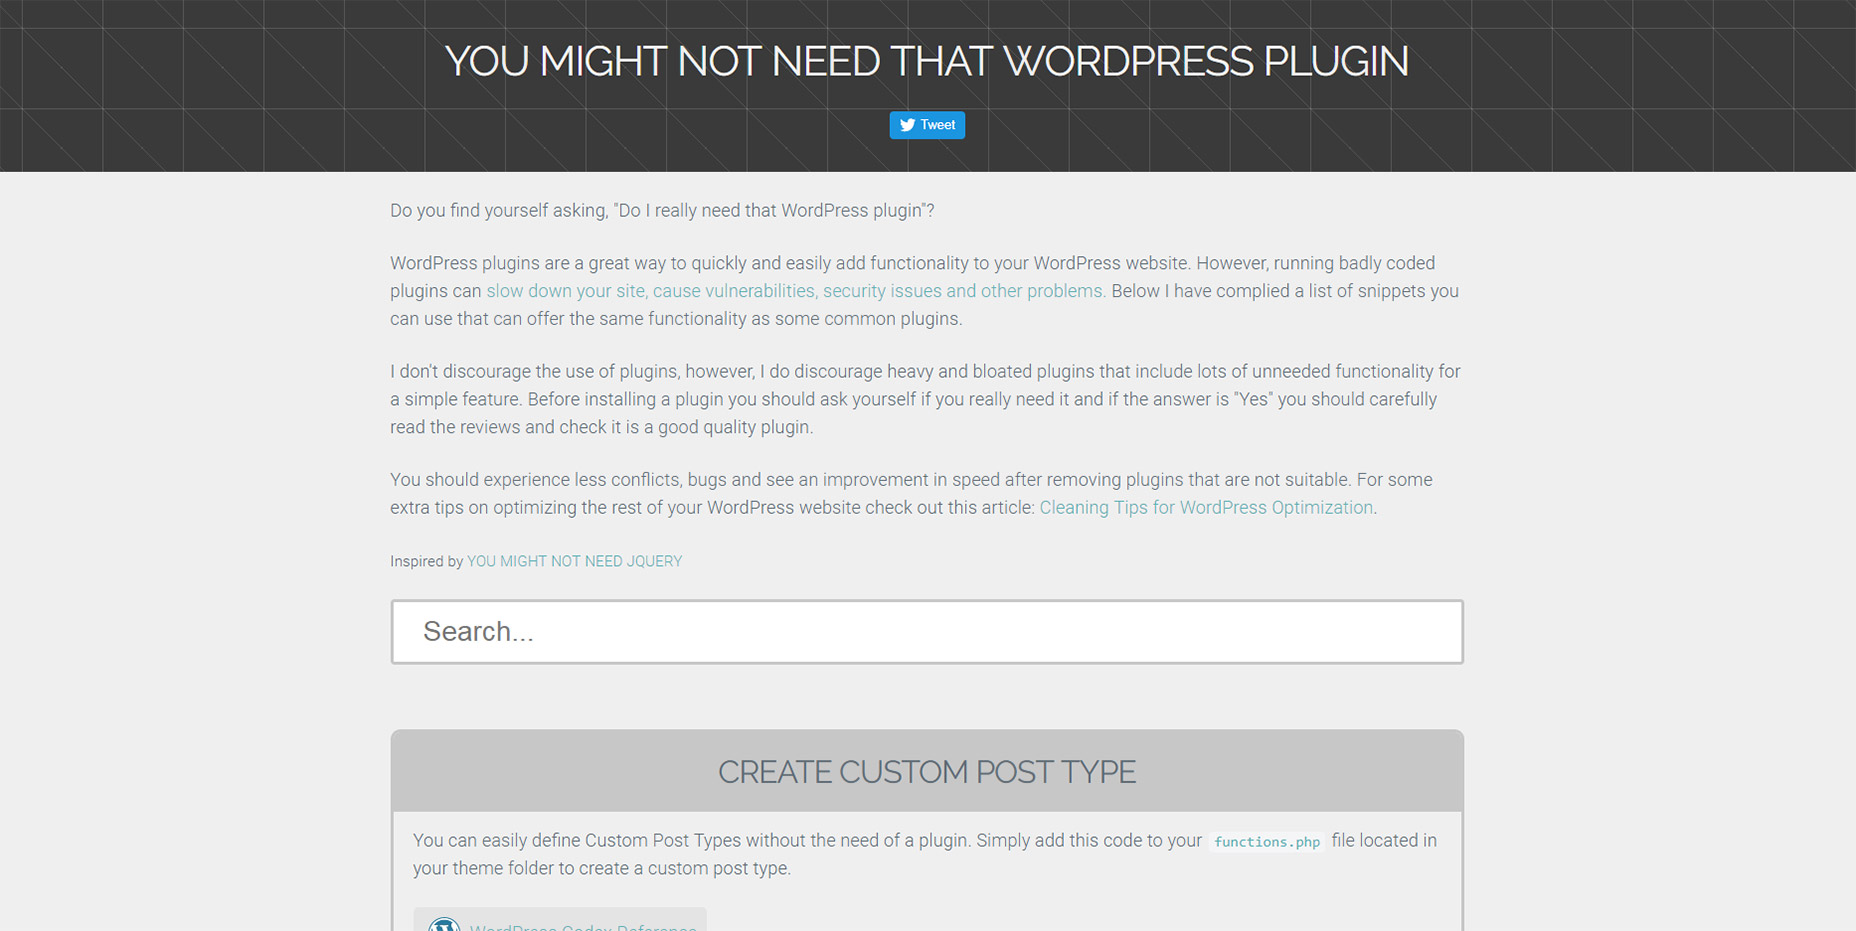 08-might-not-need-wp-plugin